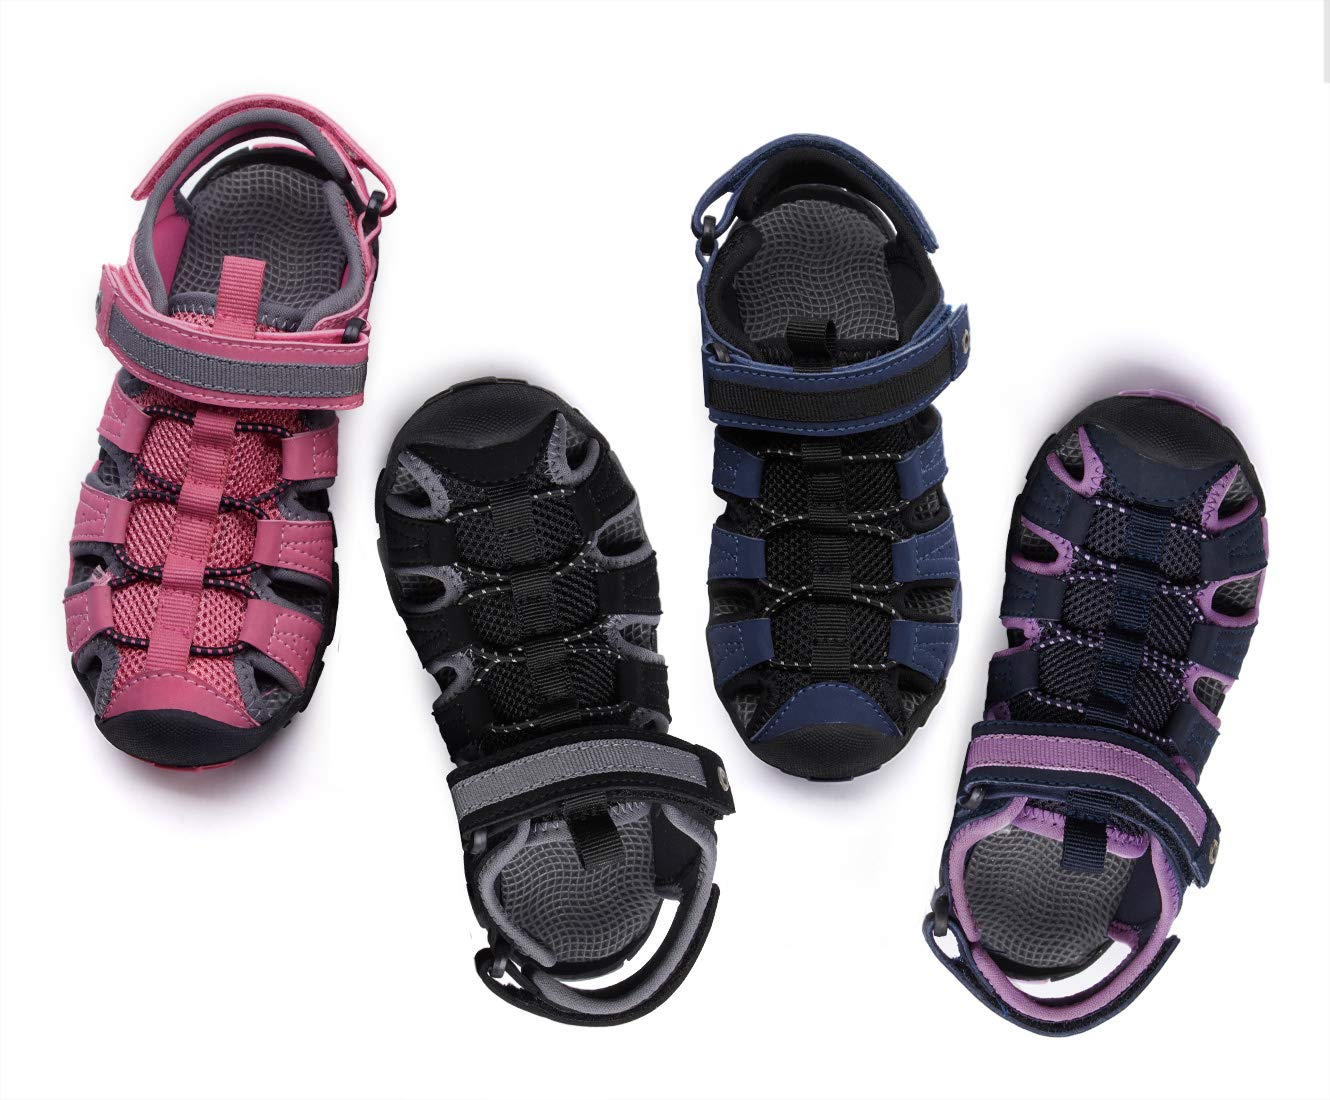 BMCiTYBM Girls Boys Hiking Sport Sandals Toddler Kid Closed Toe Water Shoes Black Size 3 by BMCiTYBM (Image #7)